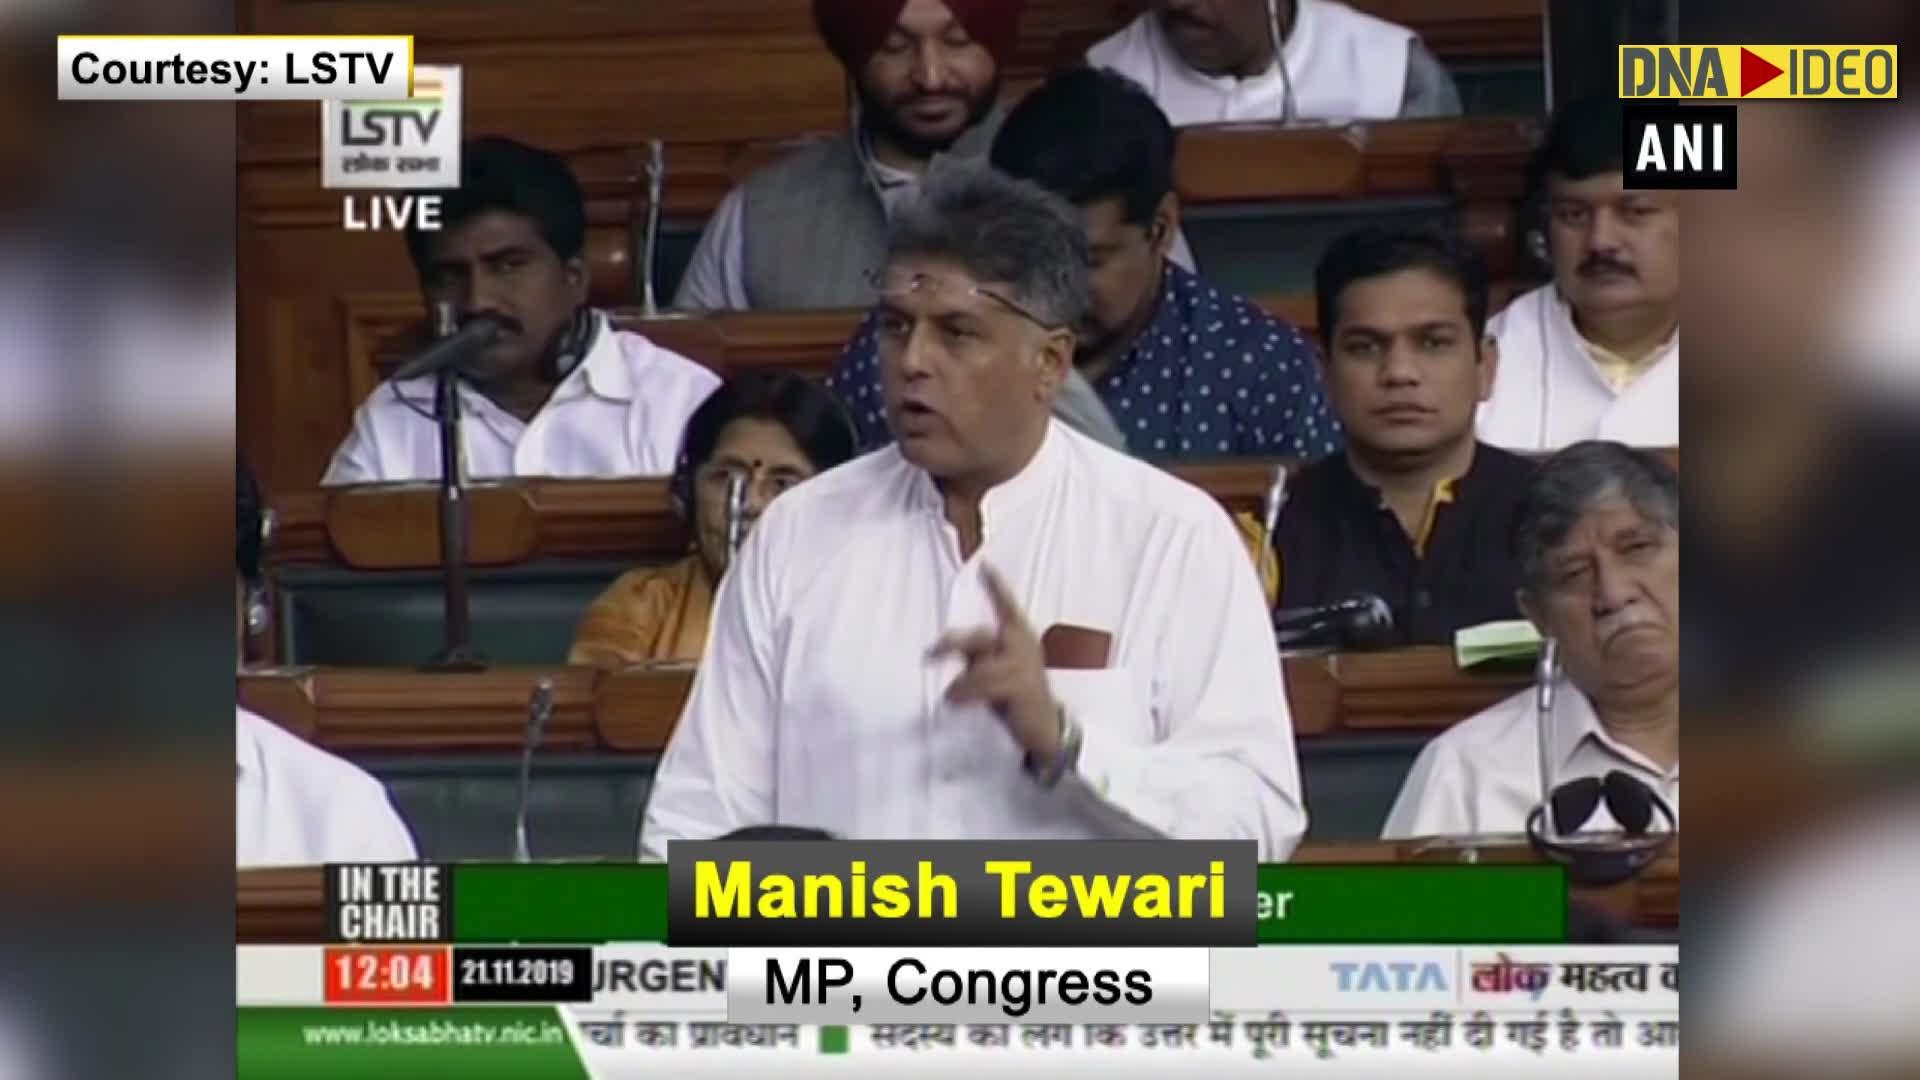 Electoral bonds were used to cover up corruption: Congress MP in Lok Sabha